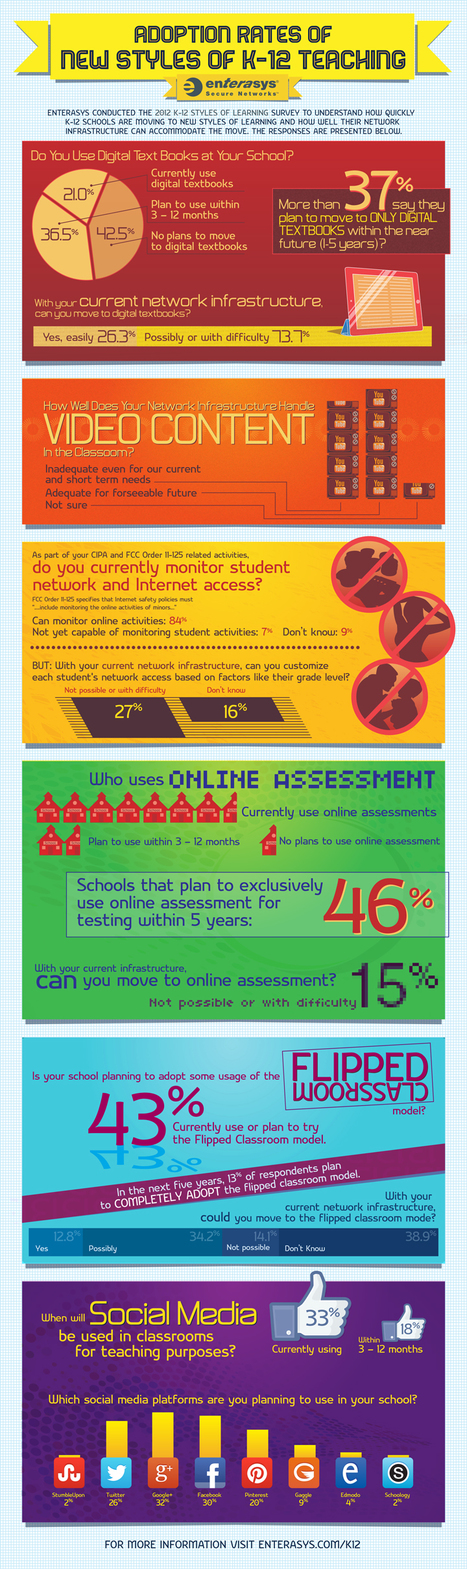 Adoption Rates of New Styles of K-12 Teaching [Infographic] - BYOD | Technology News | Scoop.it